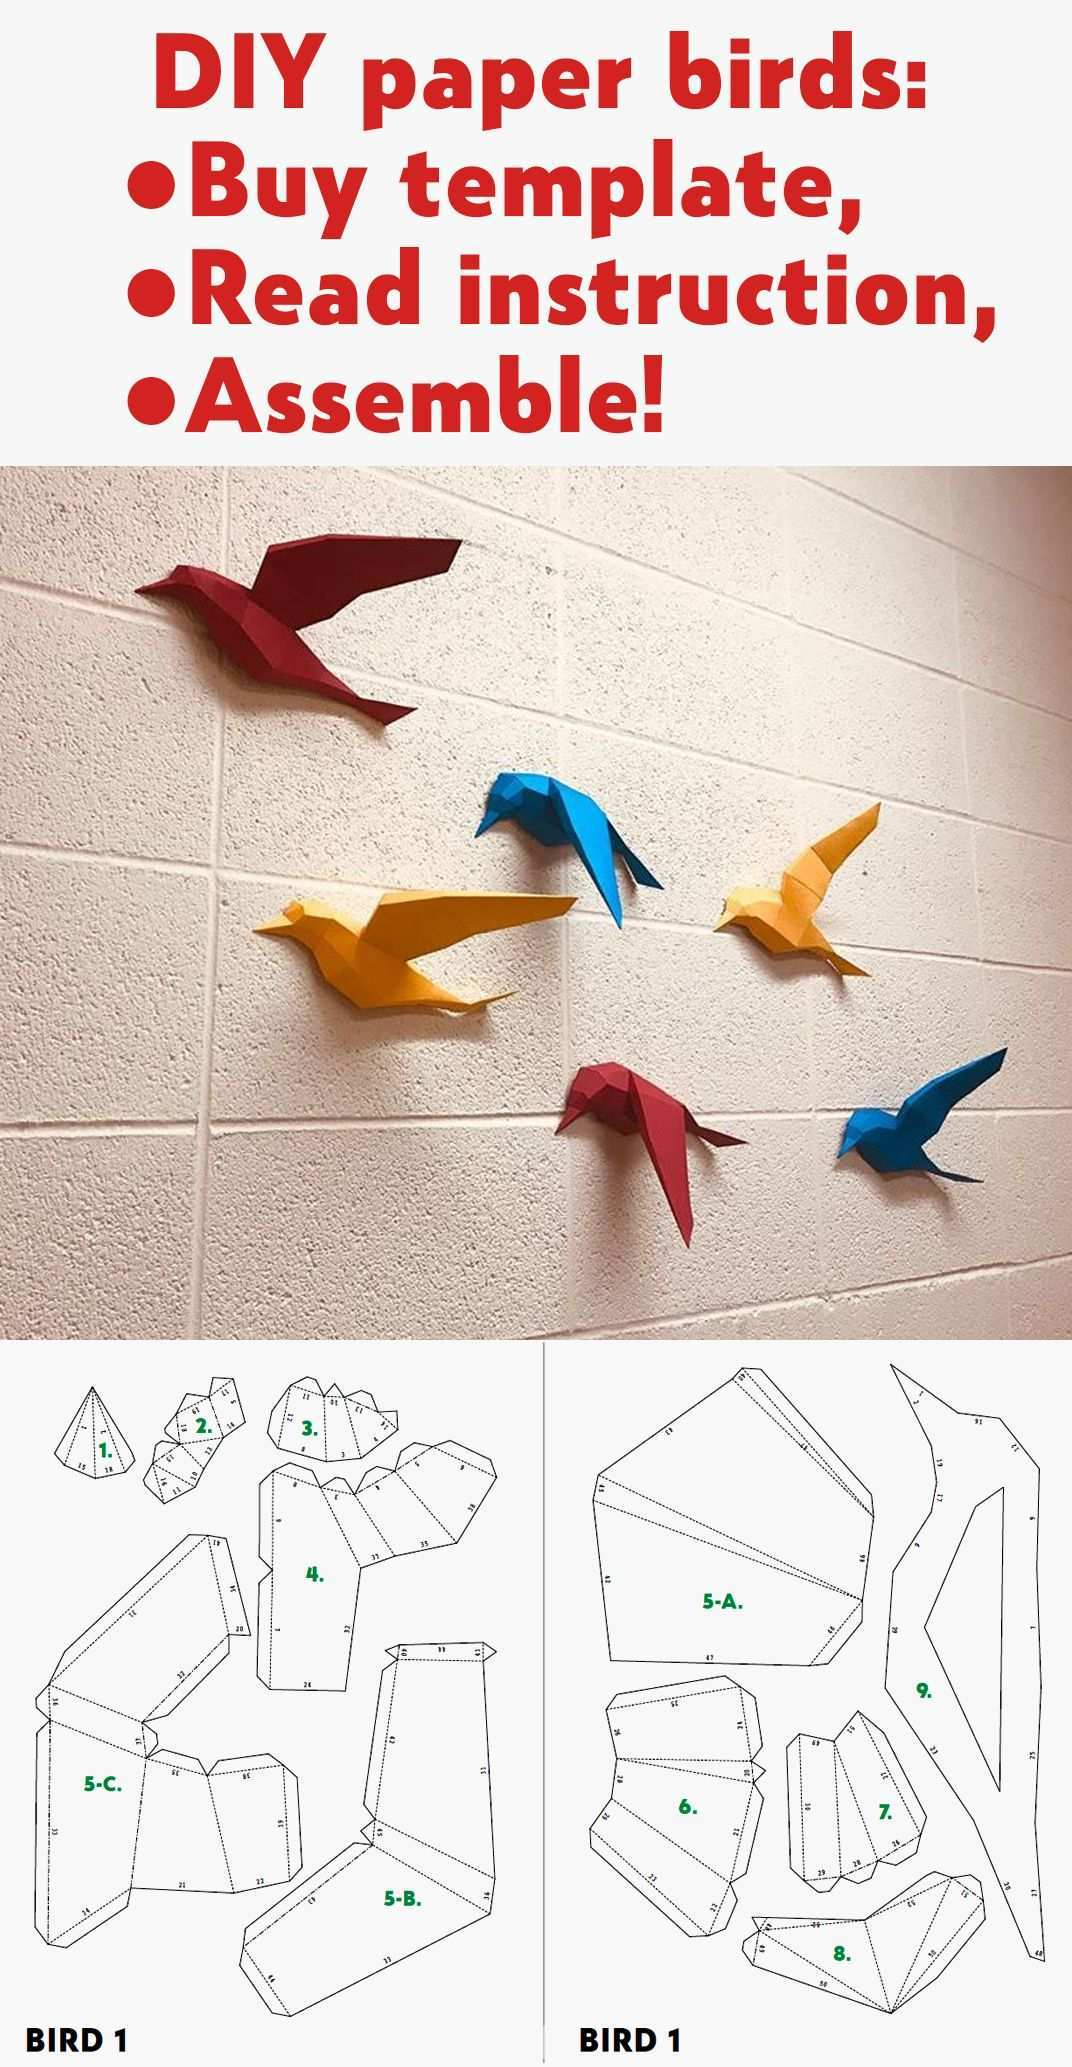 3d Papercraft Birds On Wall Diy Paper Model Sculpture Etsy In 2020 Paper Crafts Paper Crafts Origami Crafts